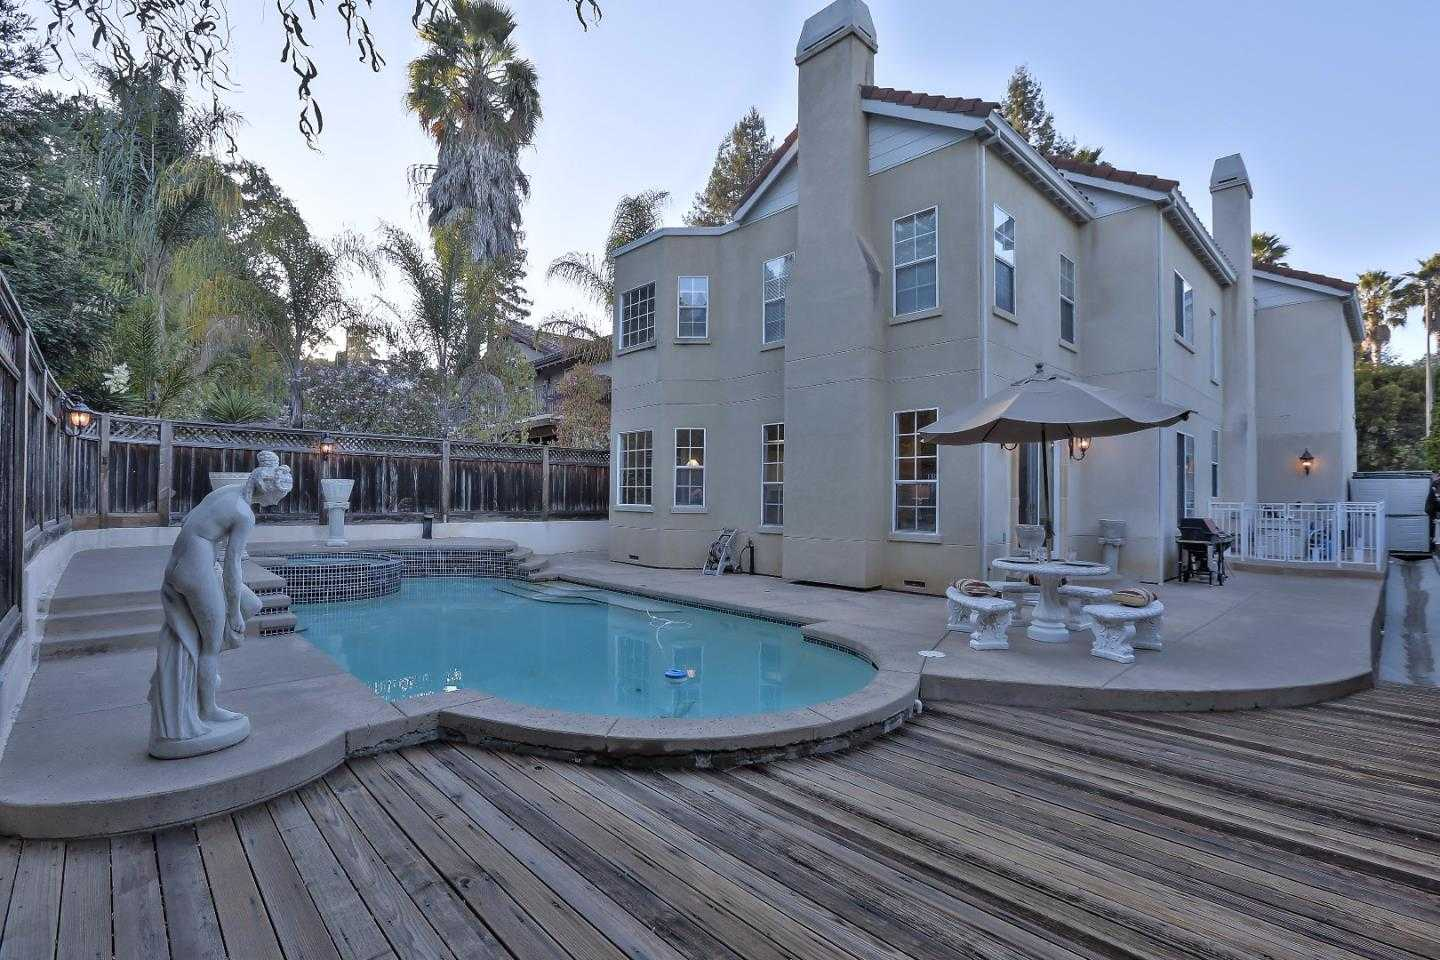 $2,357,000 - 4Br/3Ba -  for Sale in Redwood City